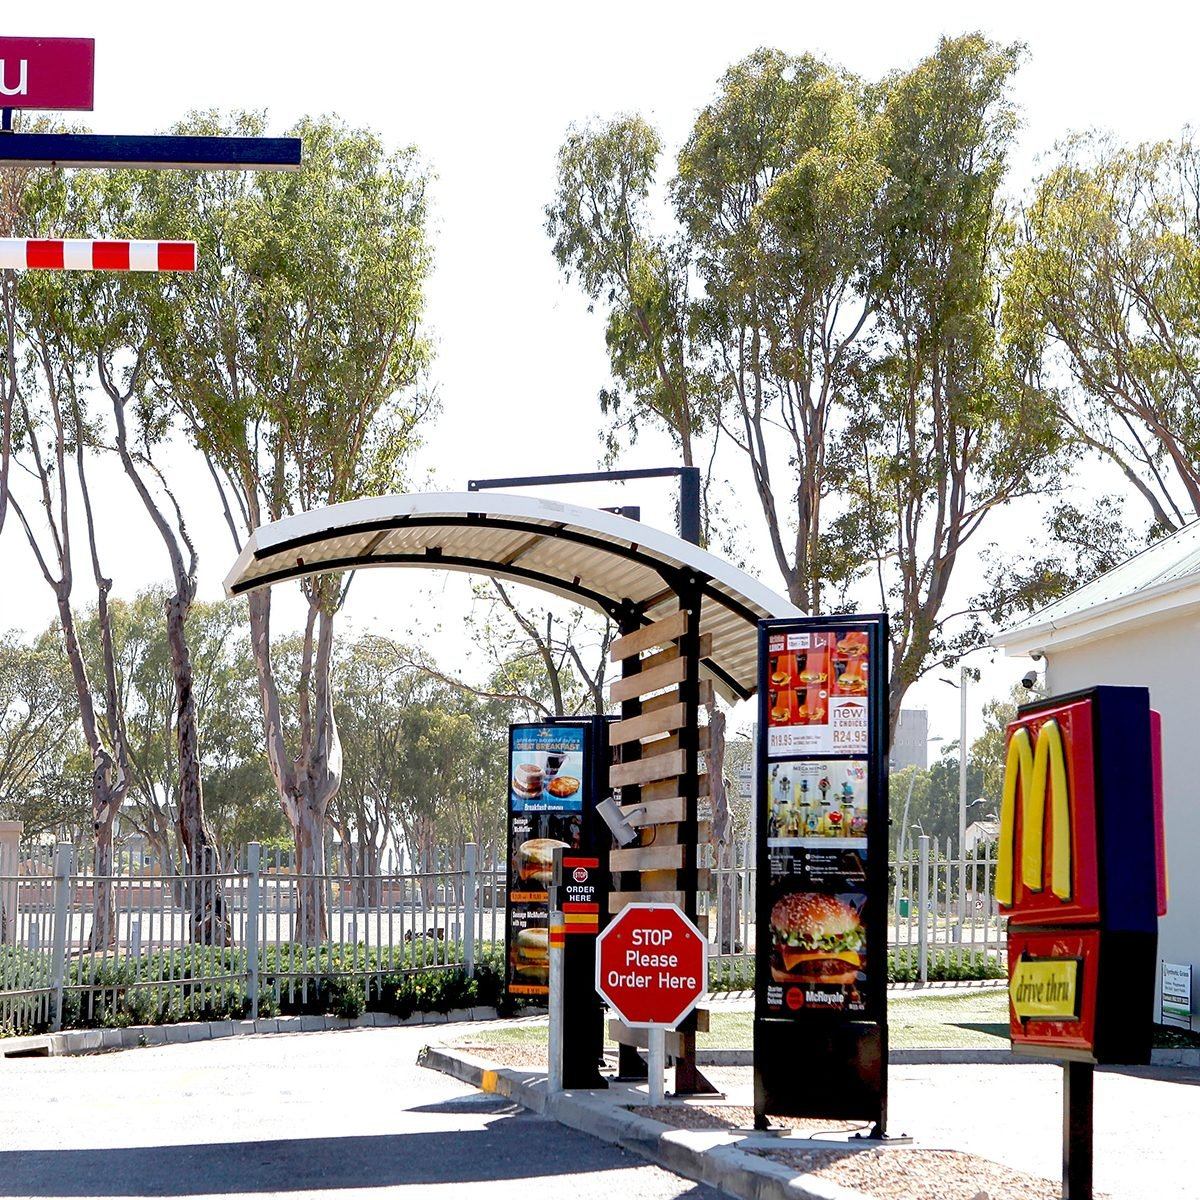 CAPE TOWN, SOUTH AFRICA - FEBRUARY 01: General view of the scene of the alleged incident, a McDonalds drive-through, opposite the Cape Town World Cup Stadium on the day when Lady Amelia Spencer was due to appear on charges for common assault on February 1, 2011 in Cape Town, South Africa. The 18-year-old daughter of Earl Spencer was involved in a row that errupted in a McDonald's drive-through, not far from her home in Cape Town in the early hours of December 22, 2010. Today however she was not seen arriving or leaving the court and it is thought that this was due to avoid the media. (Photo by Michelly Rall/WireImage)